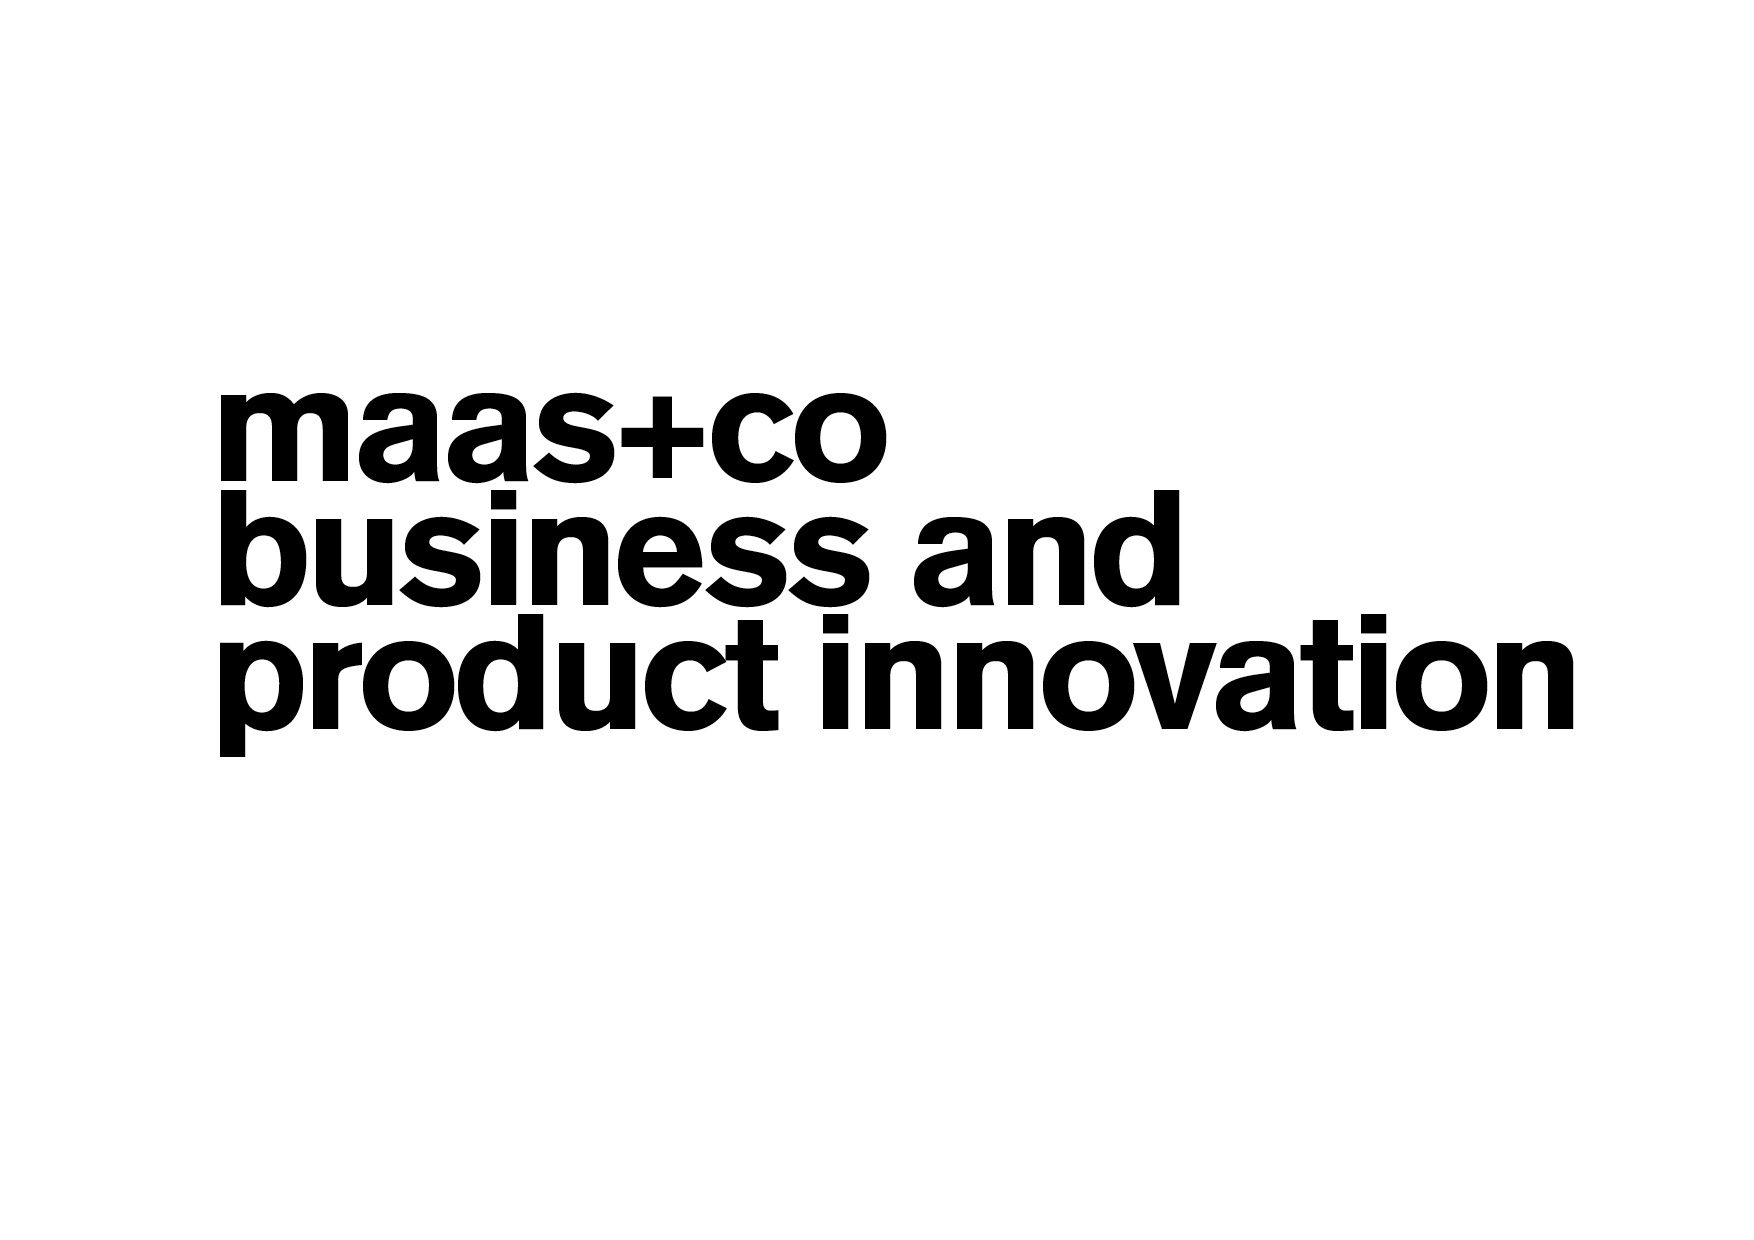 maas+co business and product innovation